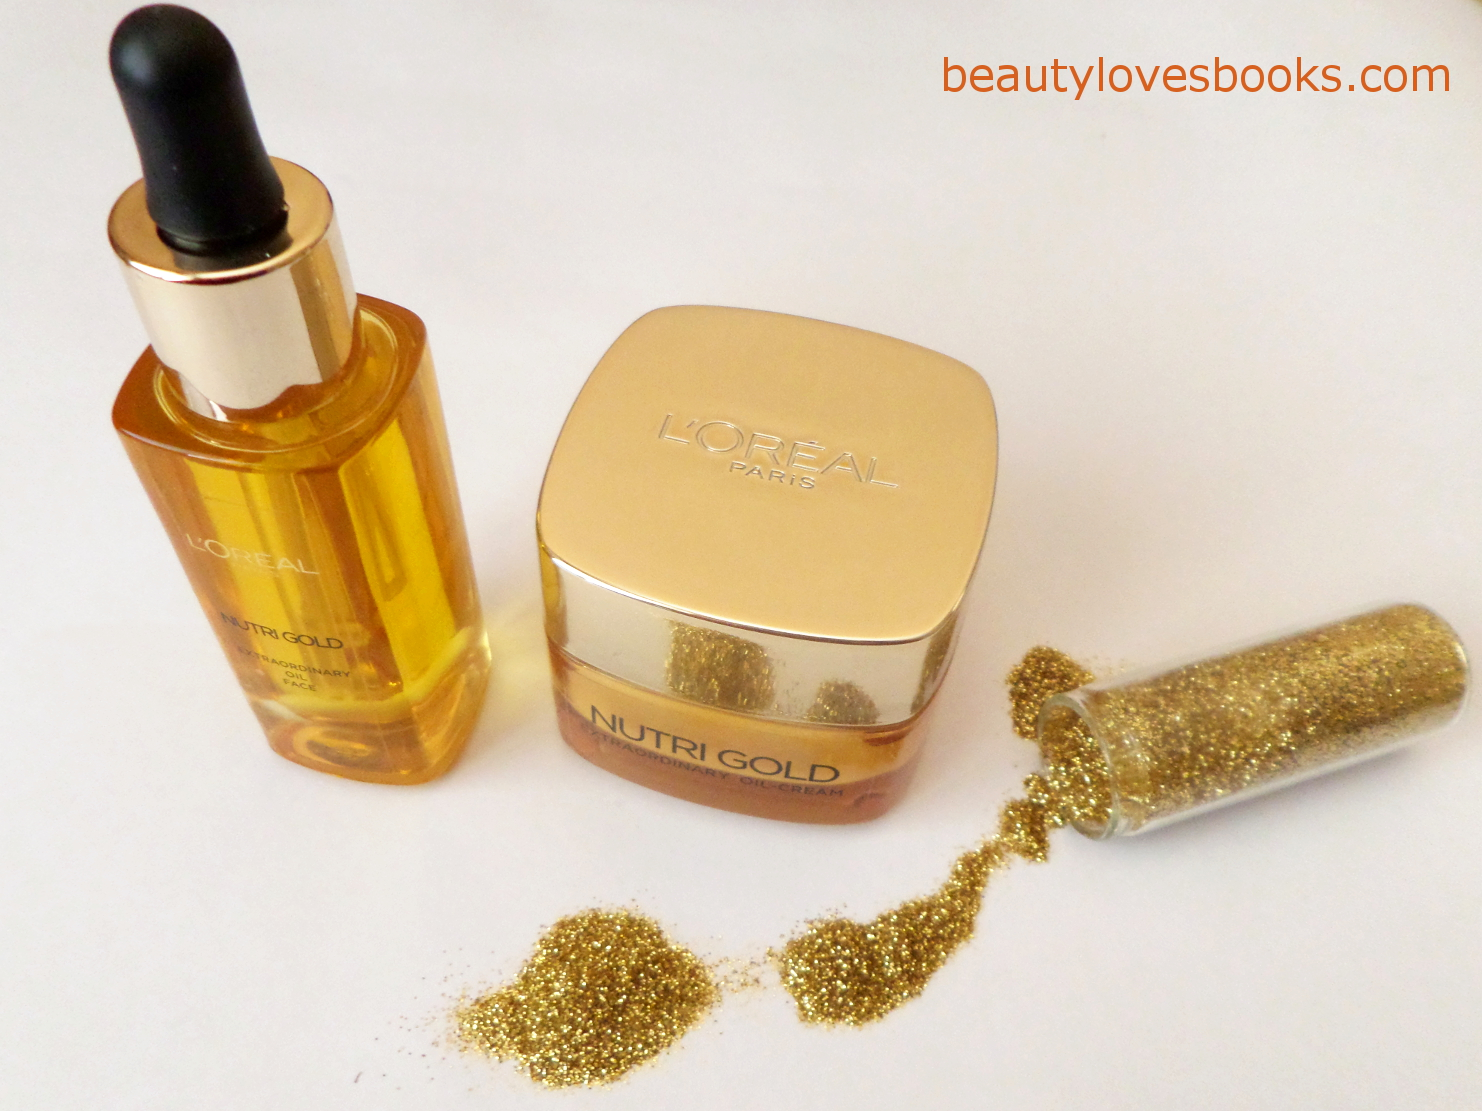 L'oreal Nutri Gold extraordinary face oil and oil-cream